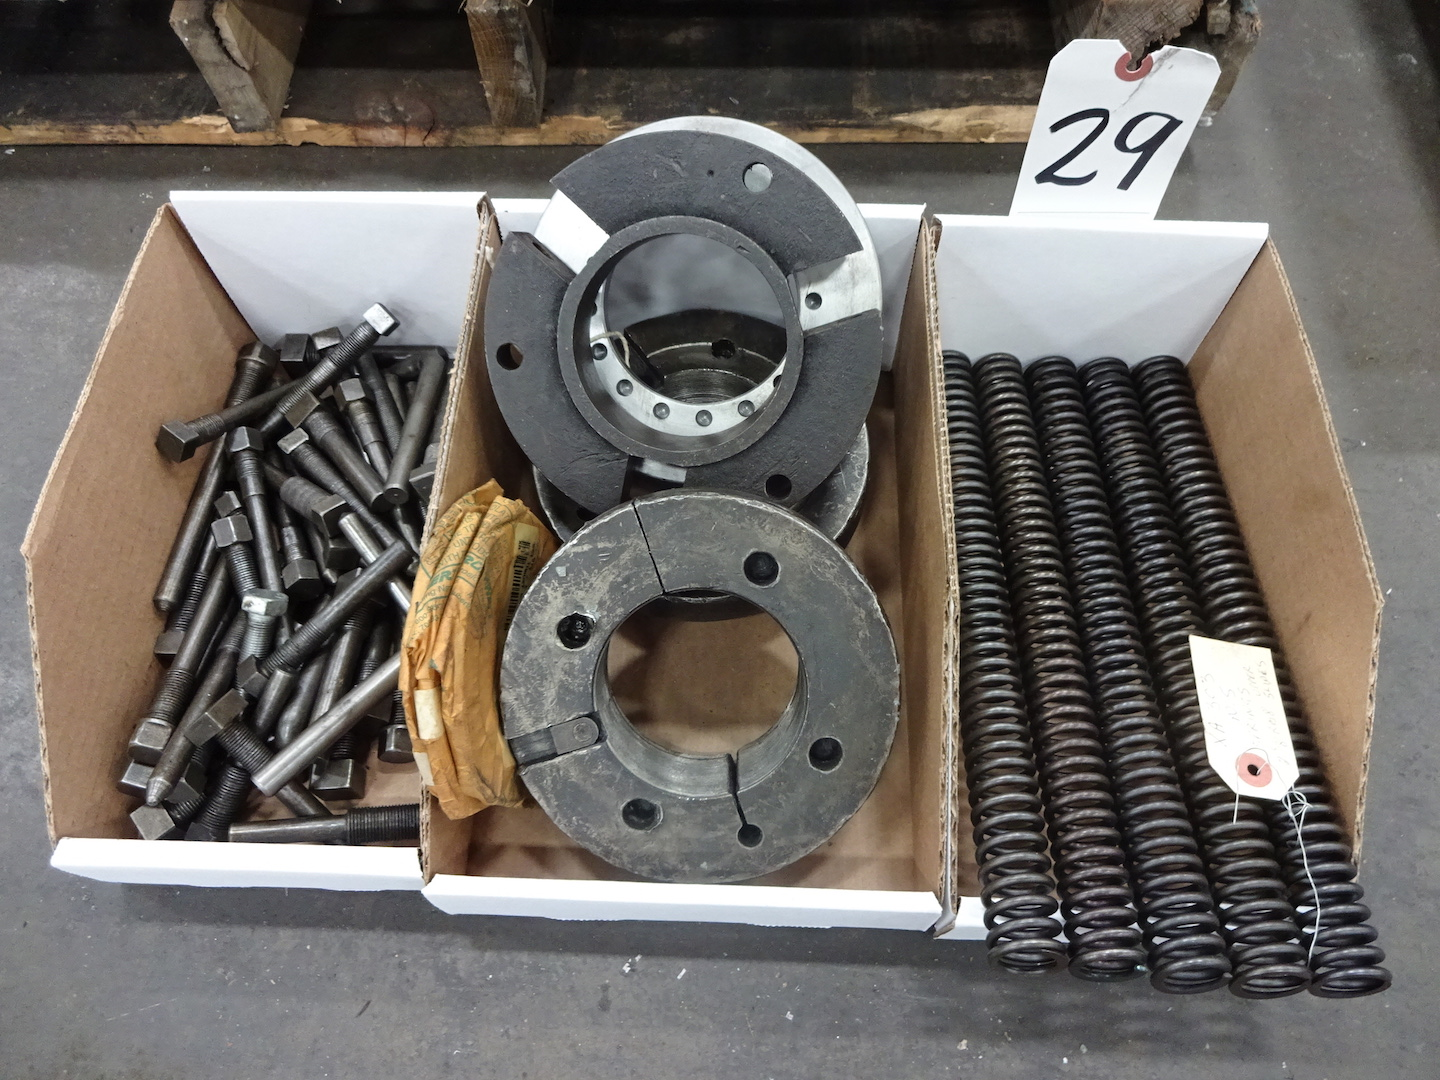 """Lot 29 - LOT - ACME 2-5/8"""" RB-8 UPPER SLIDE SPRINGS, COLLET ADJUSTERS AND SPREADERS FOR FEED PADS"""